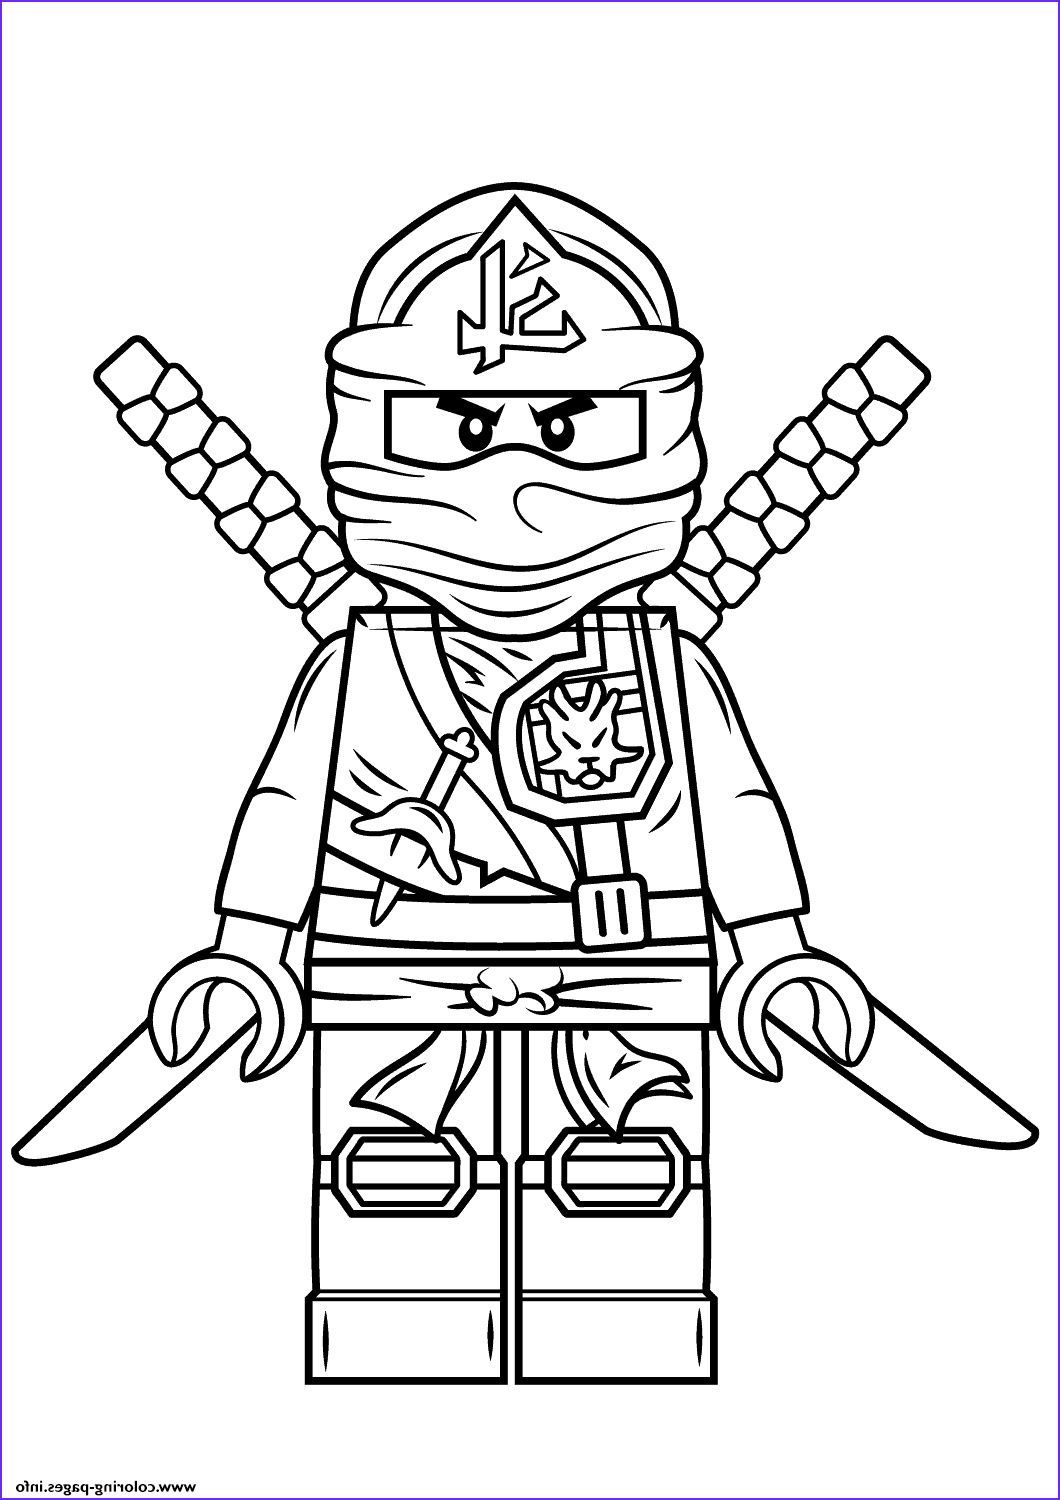 Lego Ninjago Coloring Pages In 2020 Lego Coloring Pages Ninjago Coloring Pages Lego Movie Coloring Pages